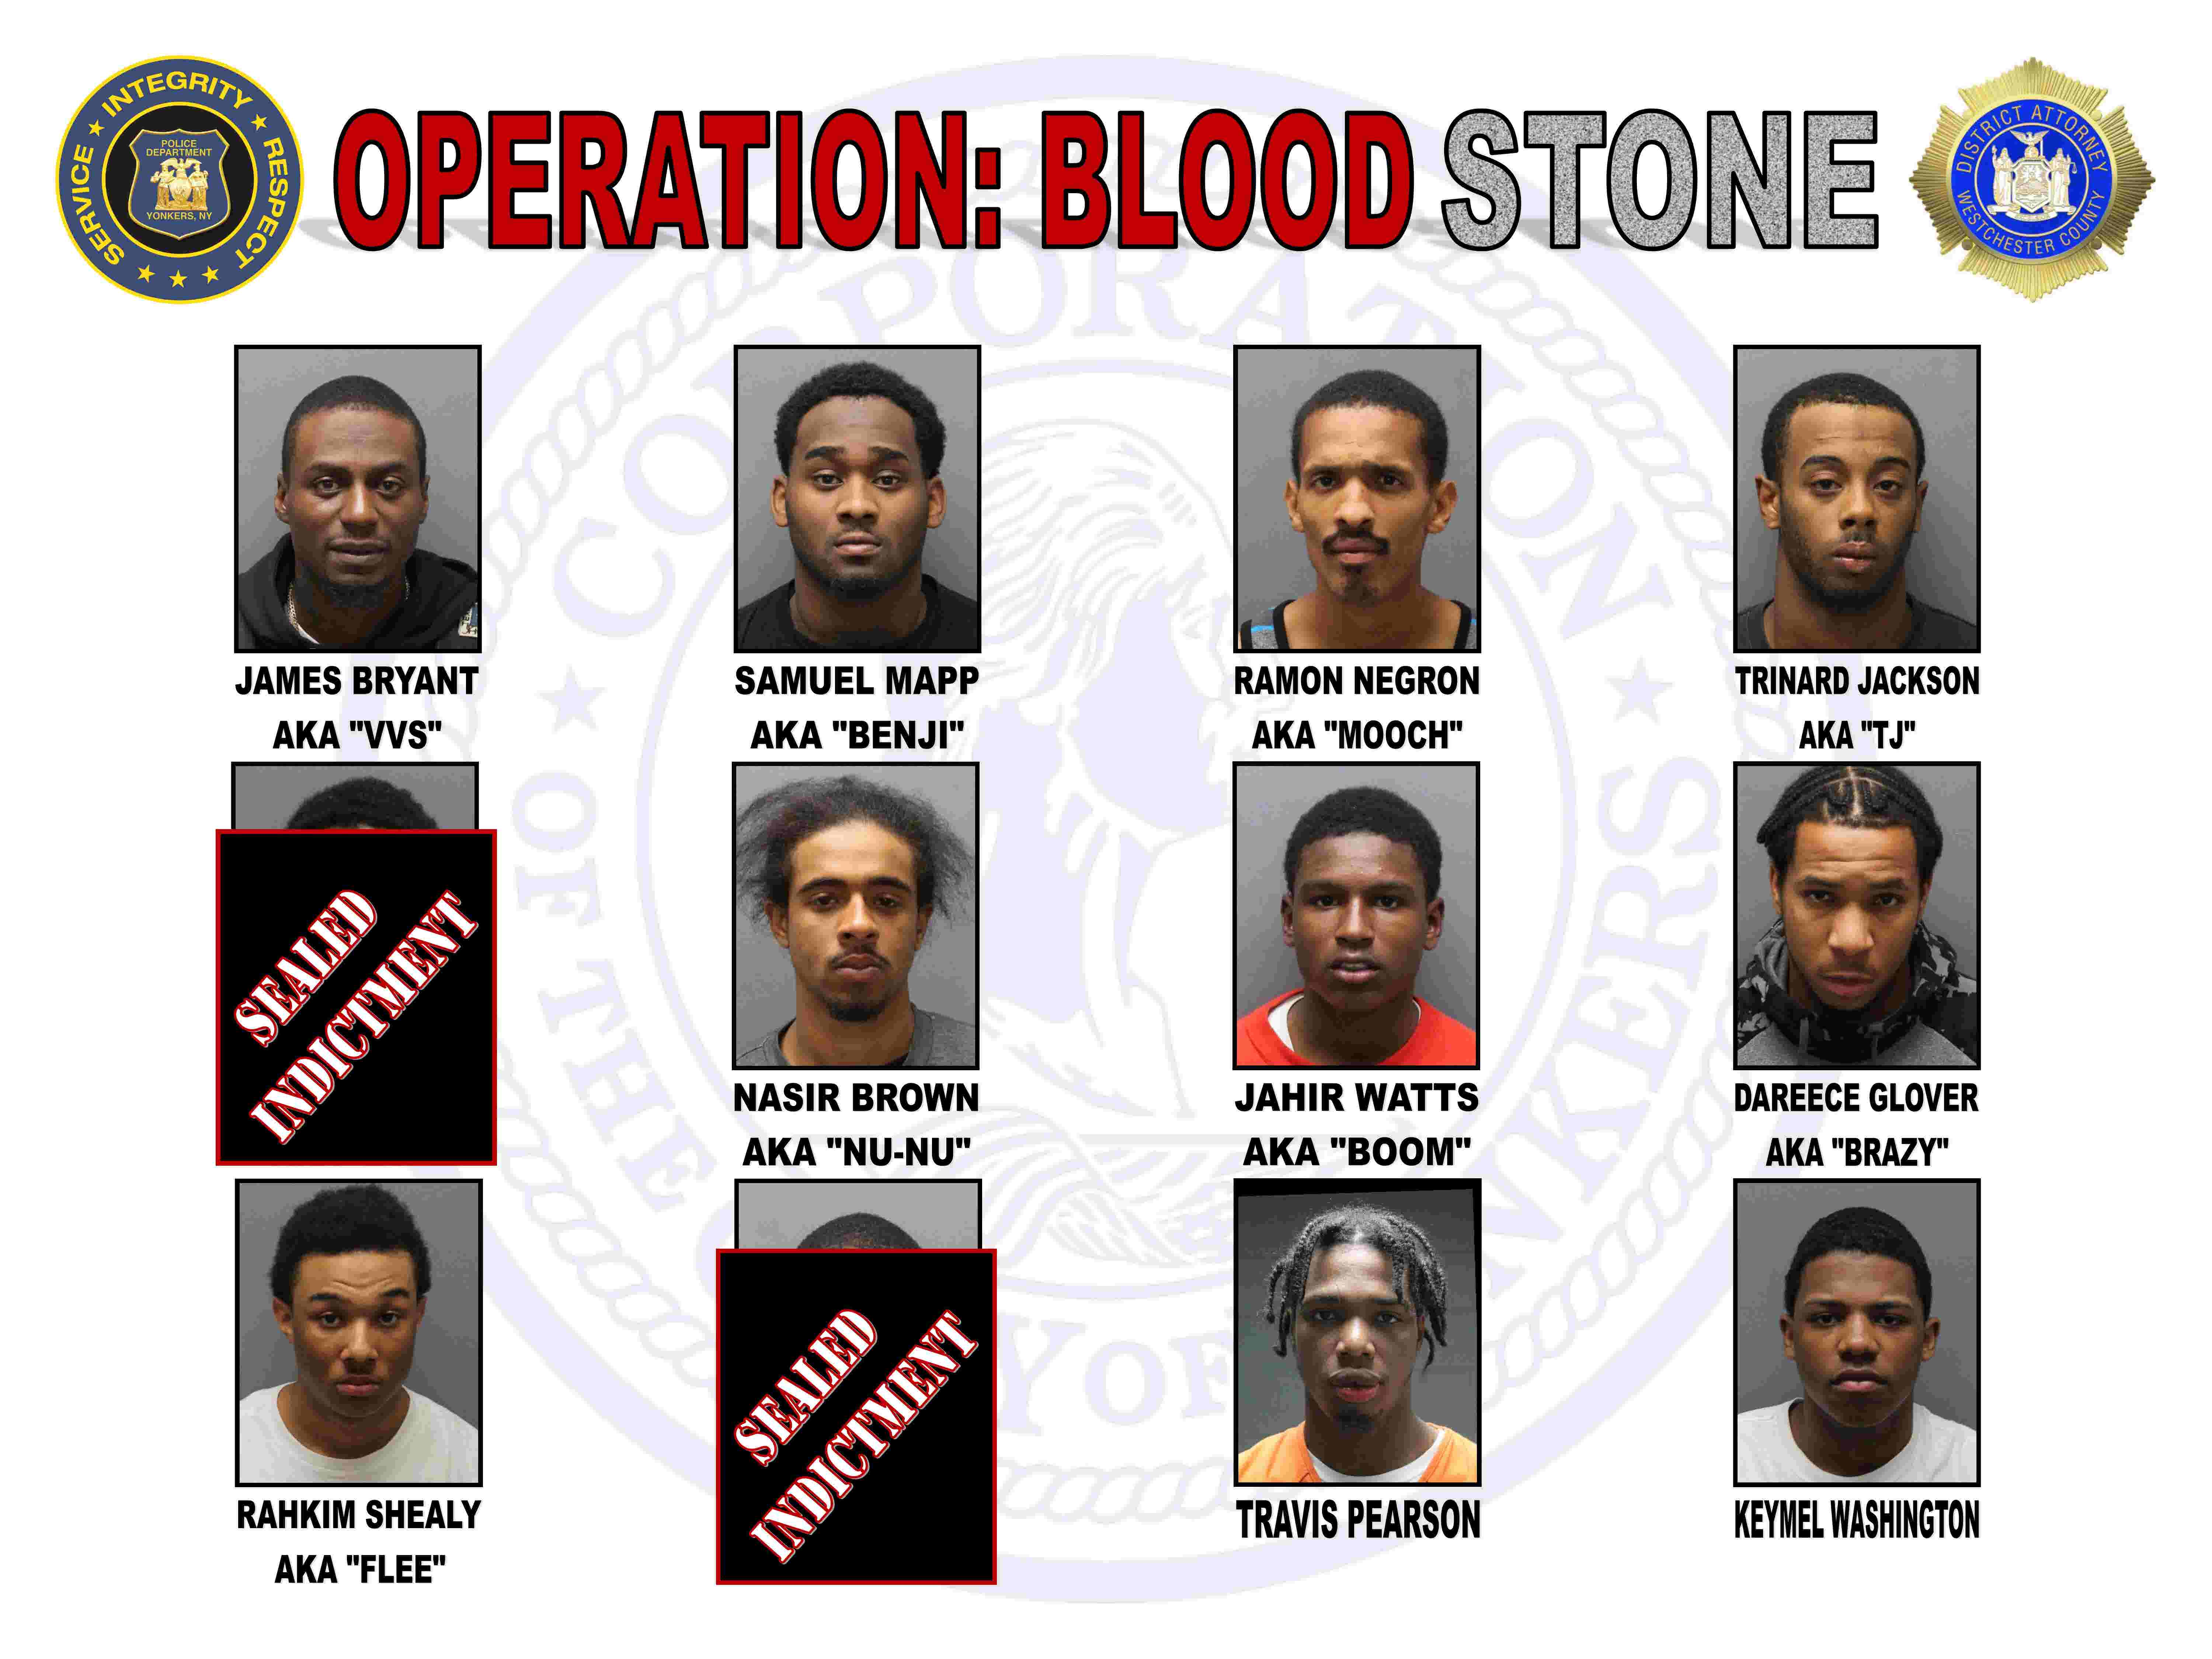 Oath Rules And Dues Inside The Blood Stone Assassins Street Gang